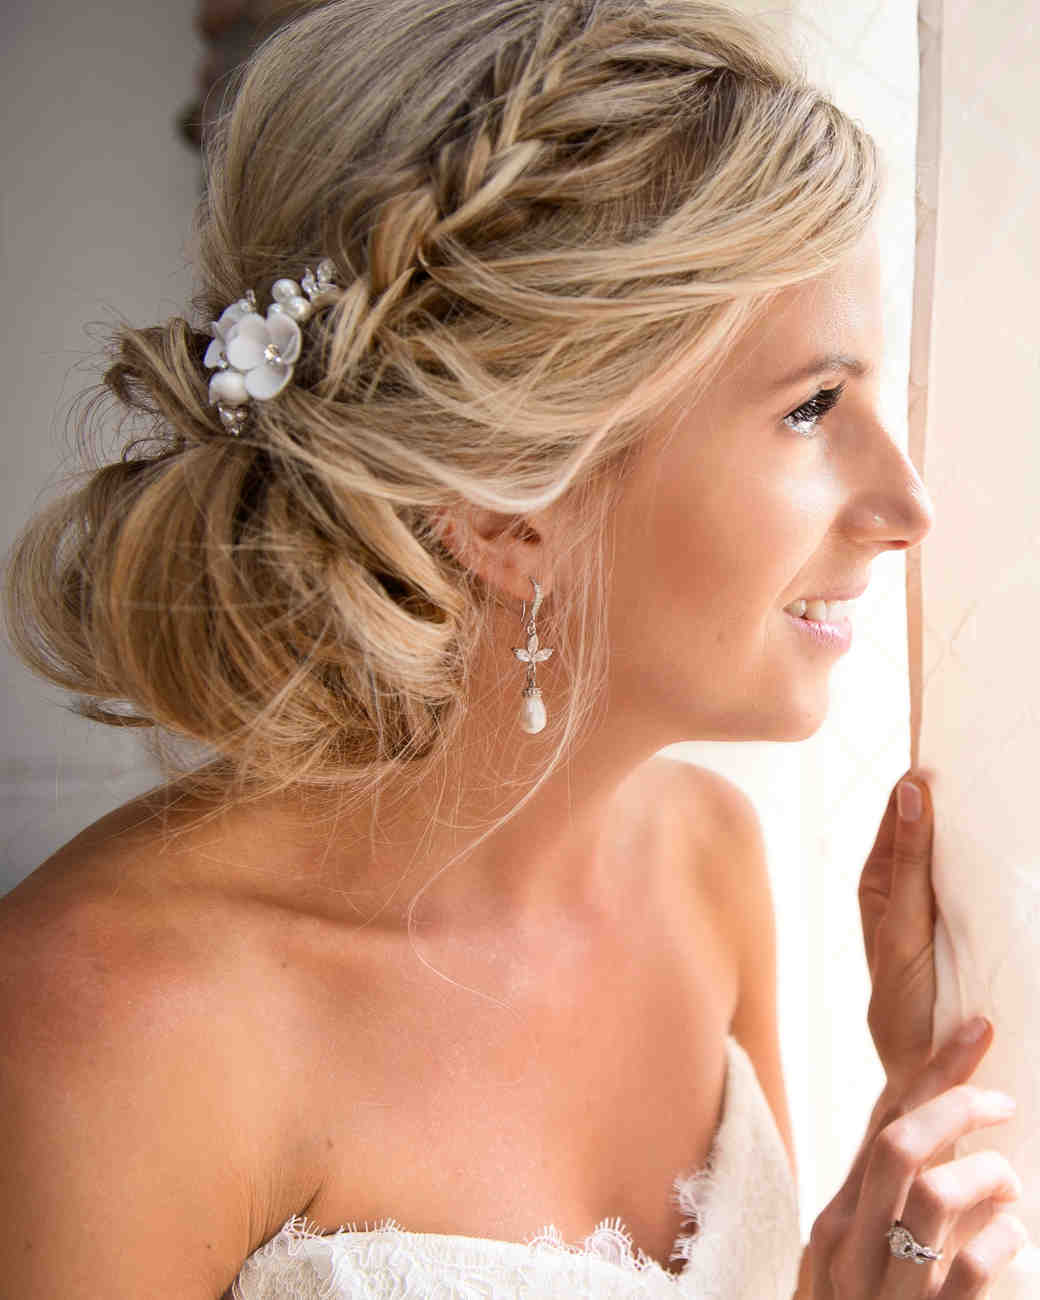 Bridal Intricate hairstyles with clear steps, Christmas office party dress